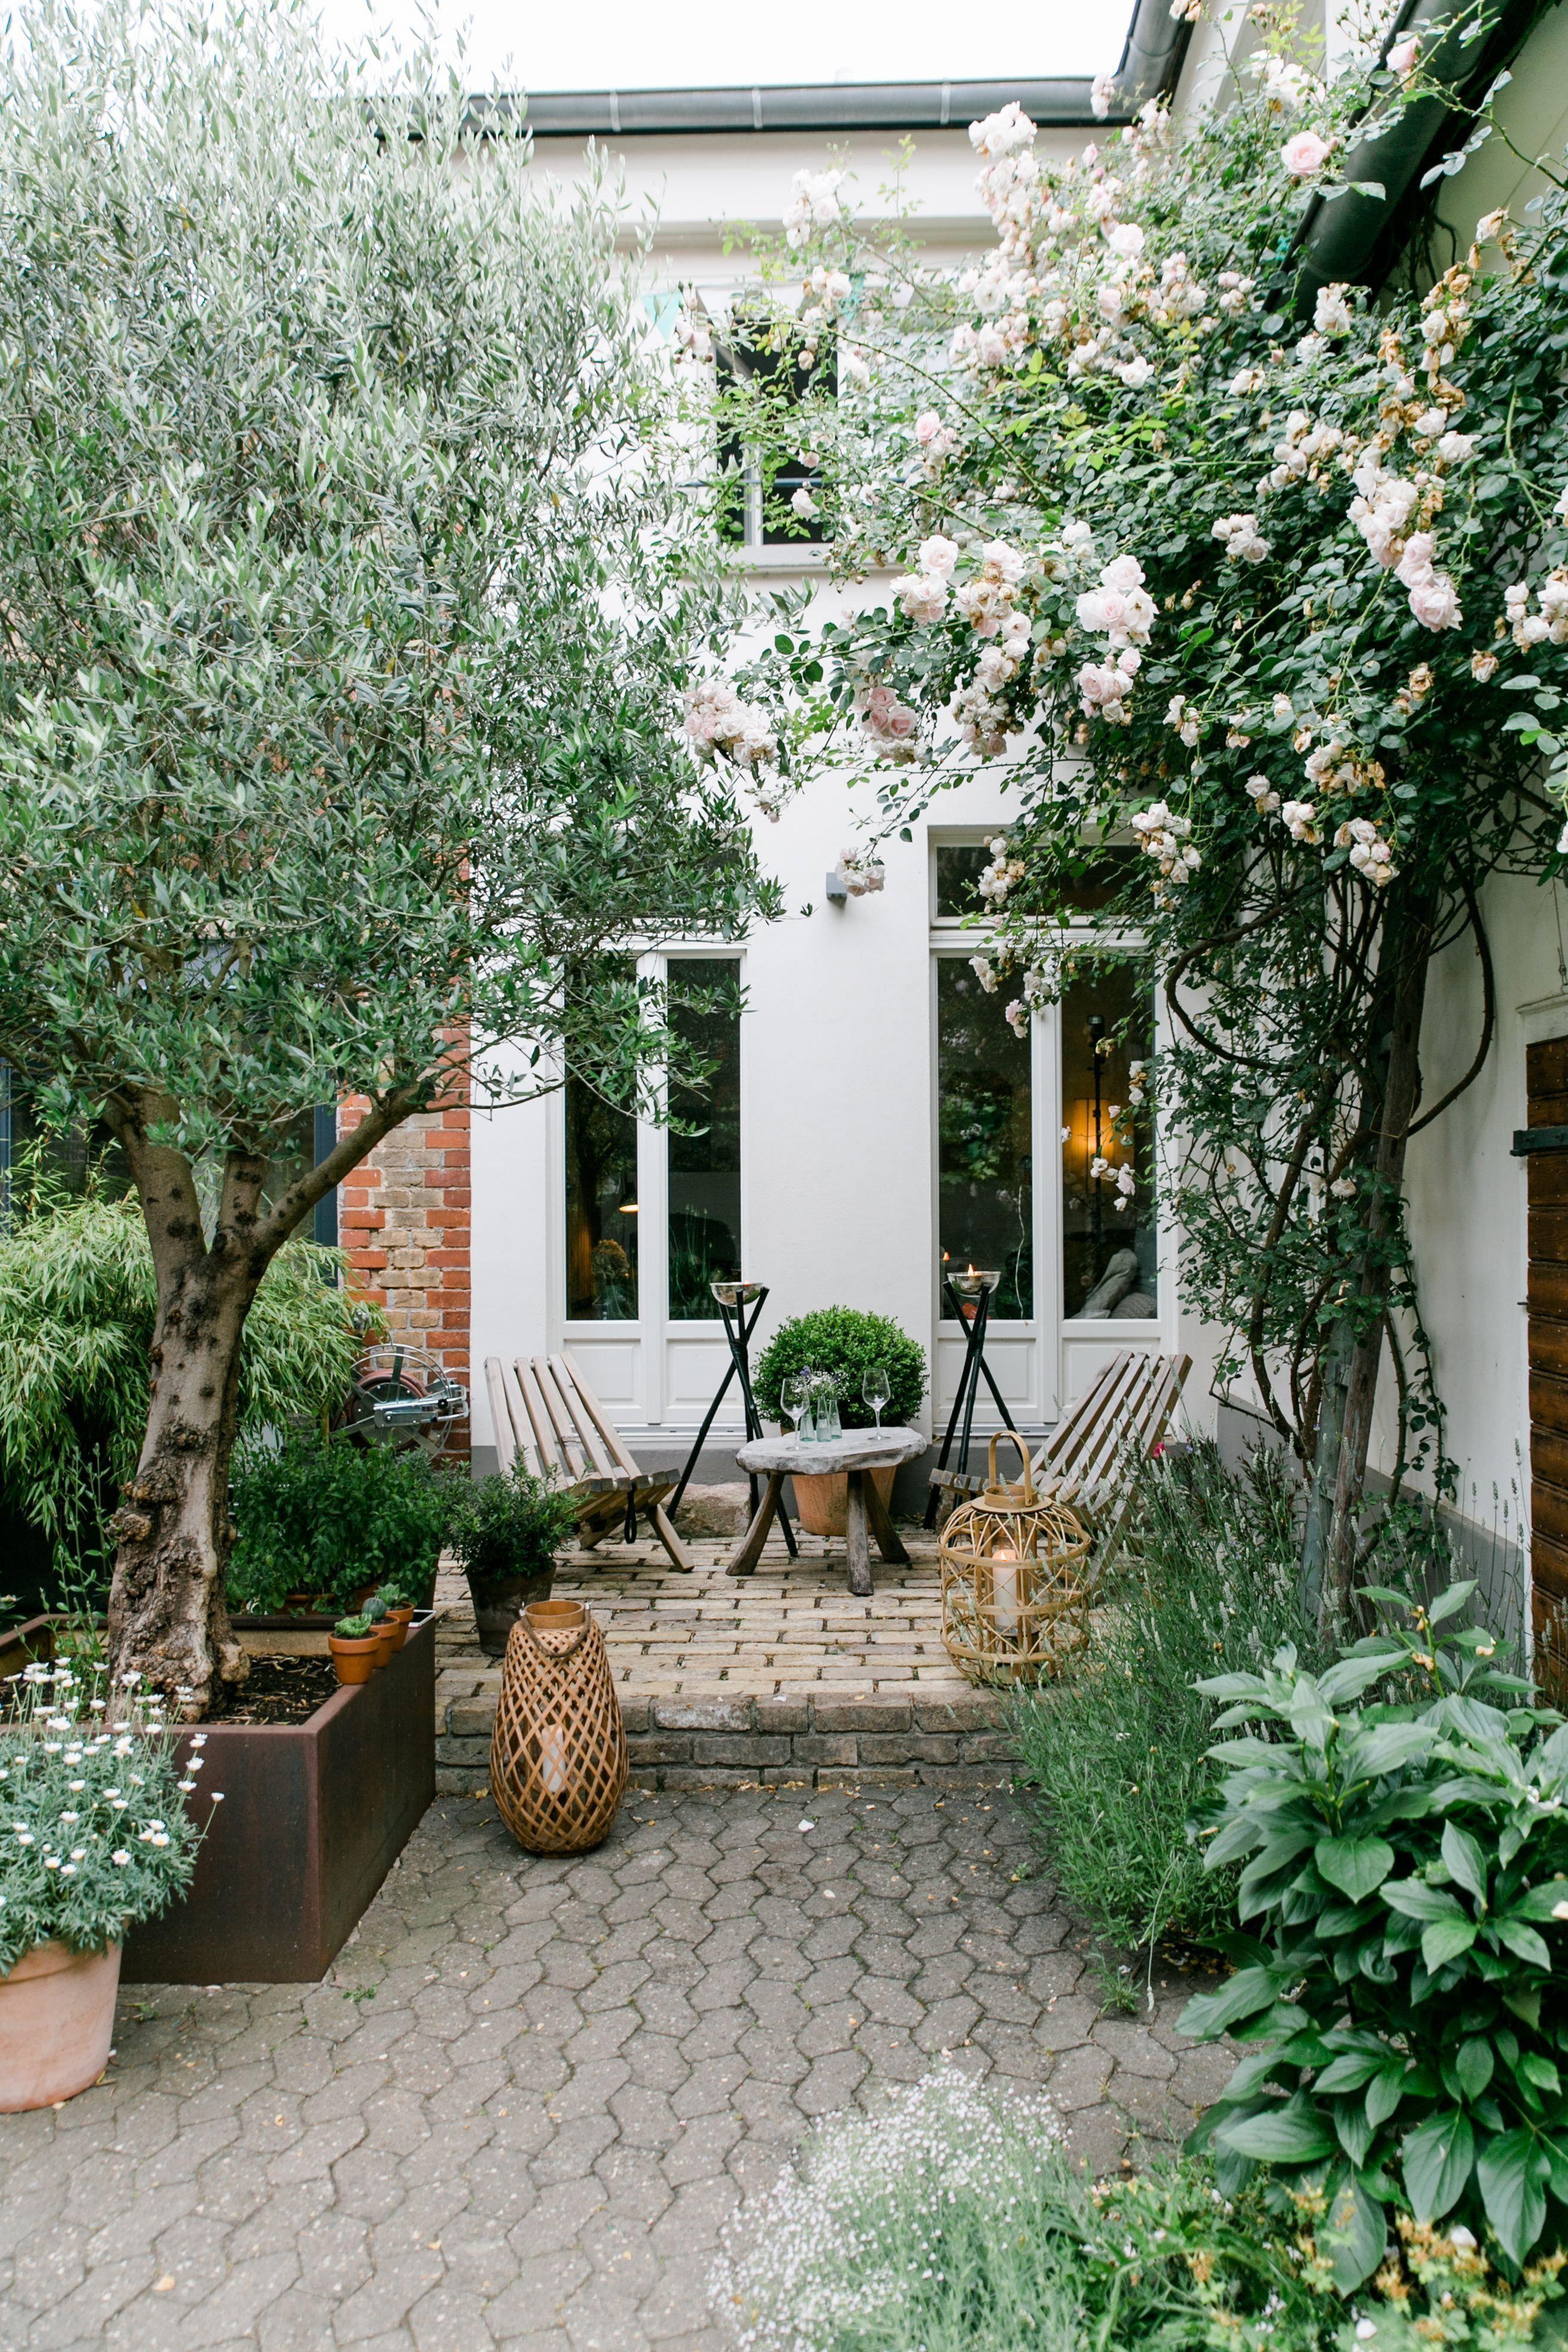 42 Beautiful Backyard You'll Love for Spring and Summer #smallcourtyardgardens